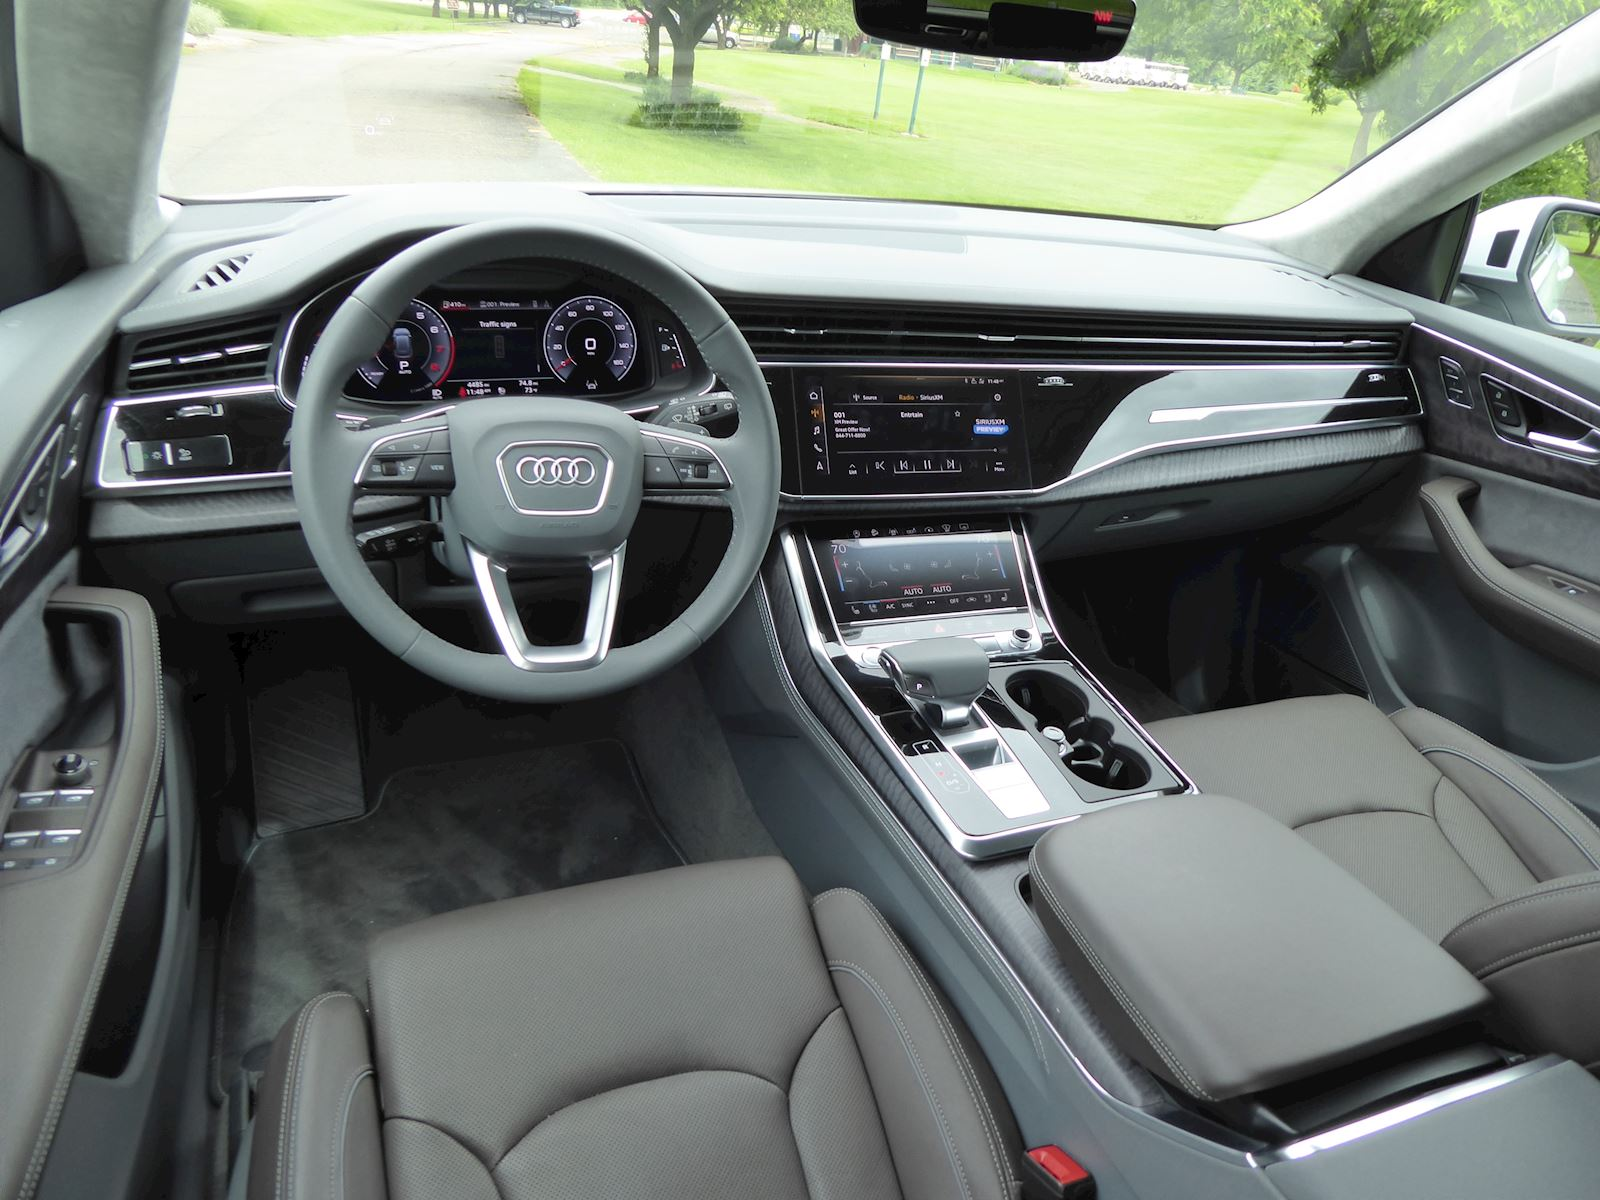 2019 Audi Q8 dashboard + front row seats photo